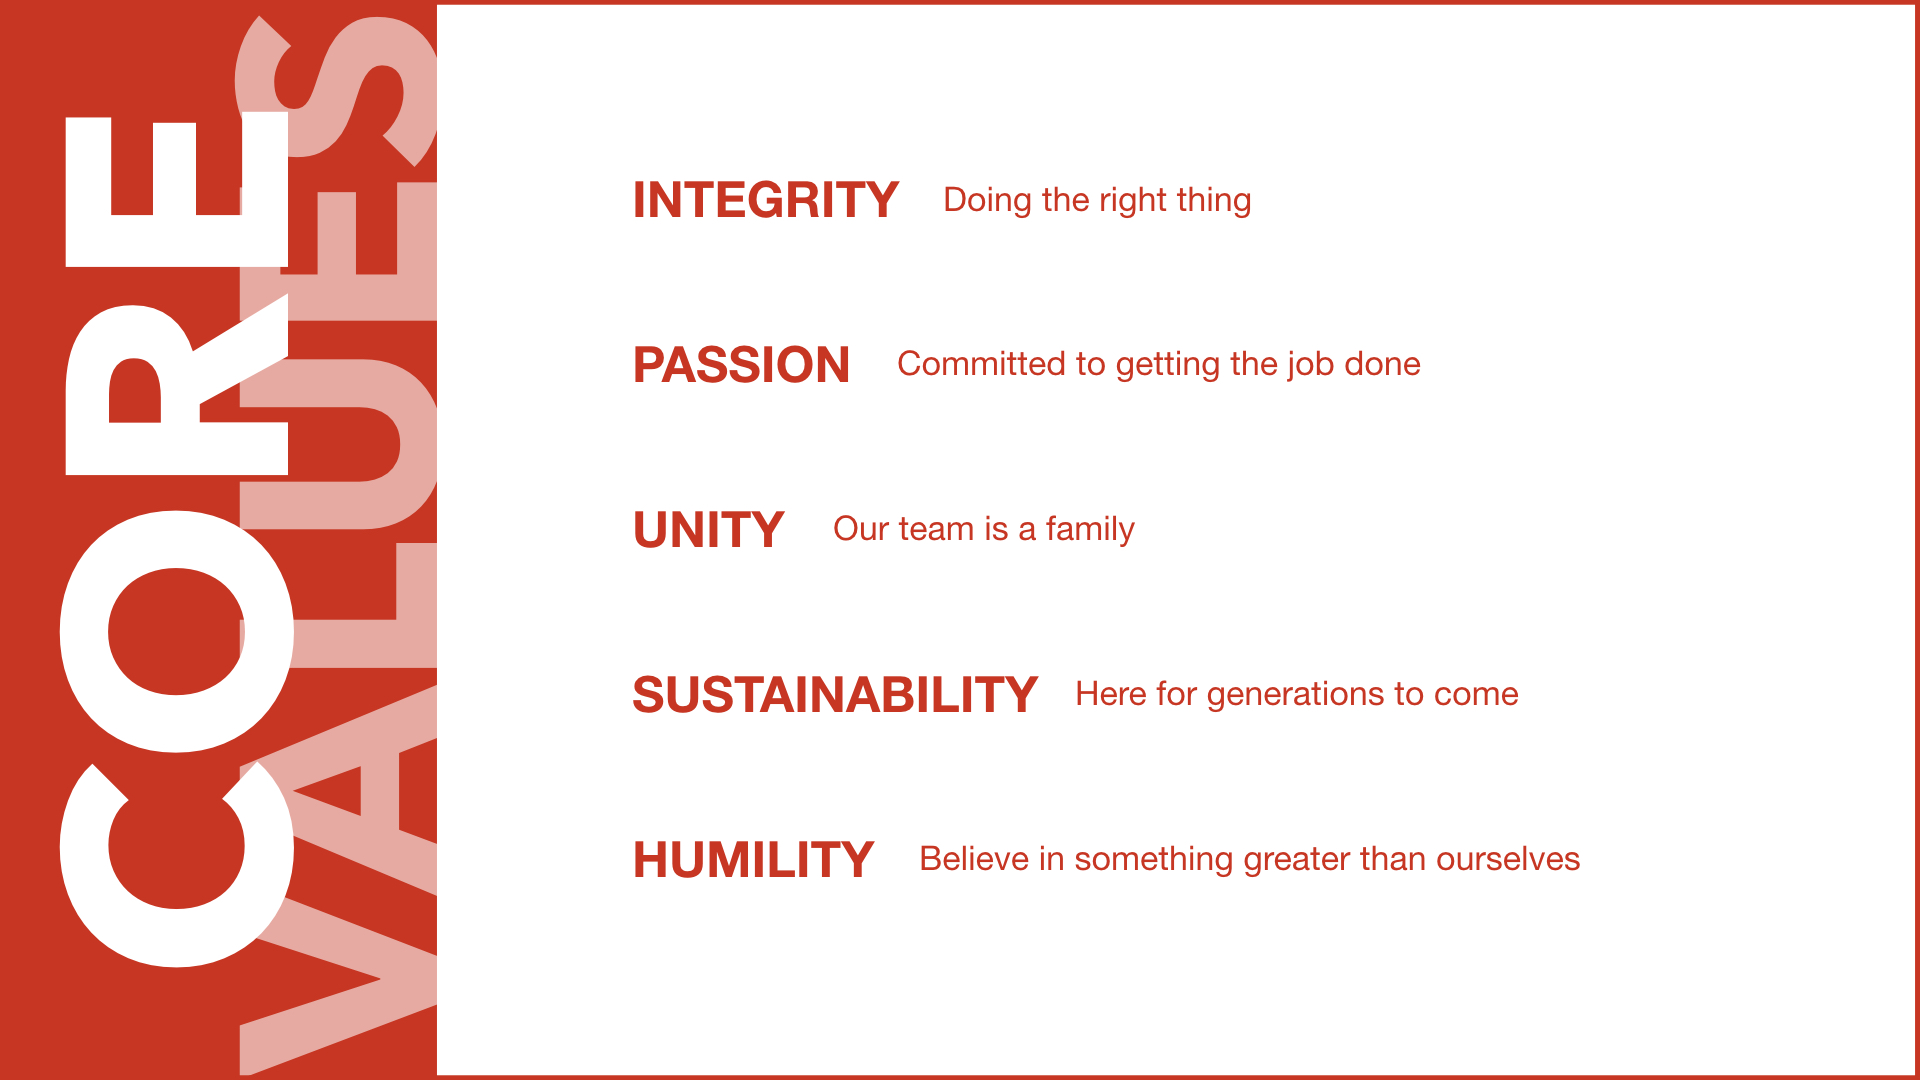 core values image.002.jpeg